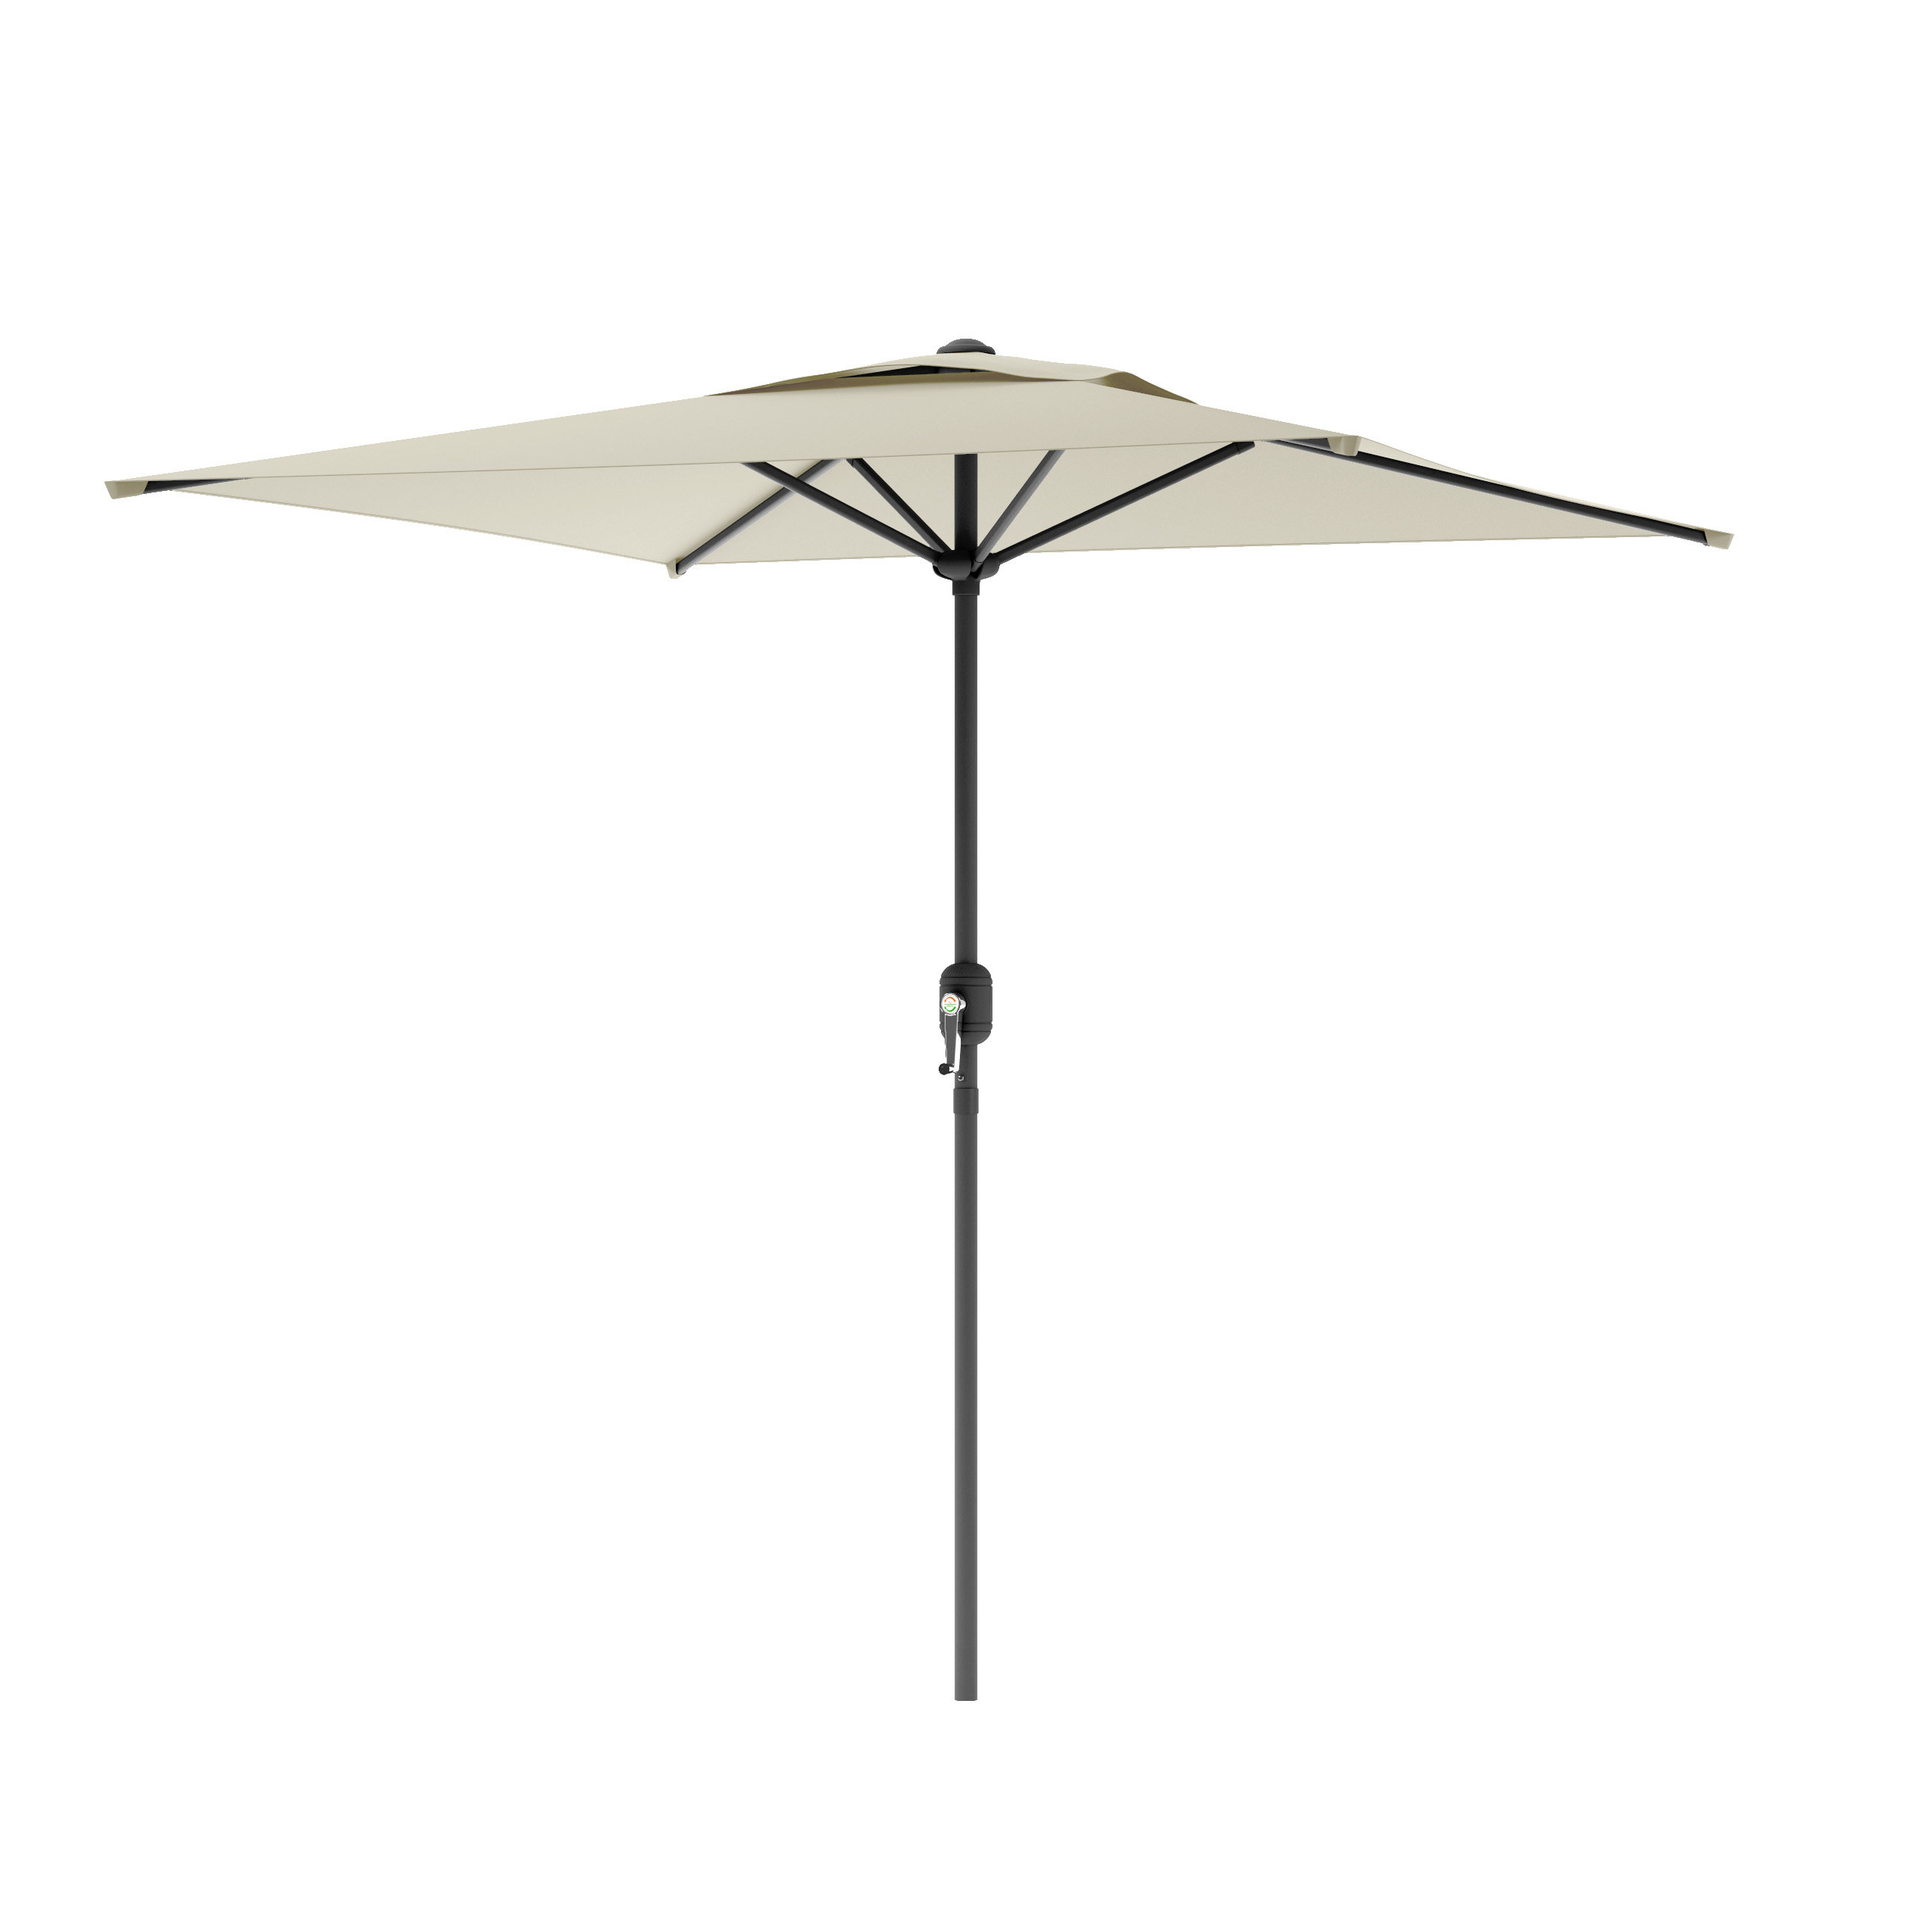 Most Recently Released Crowborough Market Umbrellas In Crowborough 9' Square Market Umbrella (View 4 of 20)